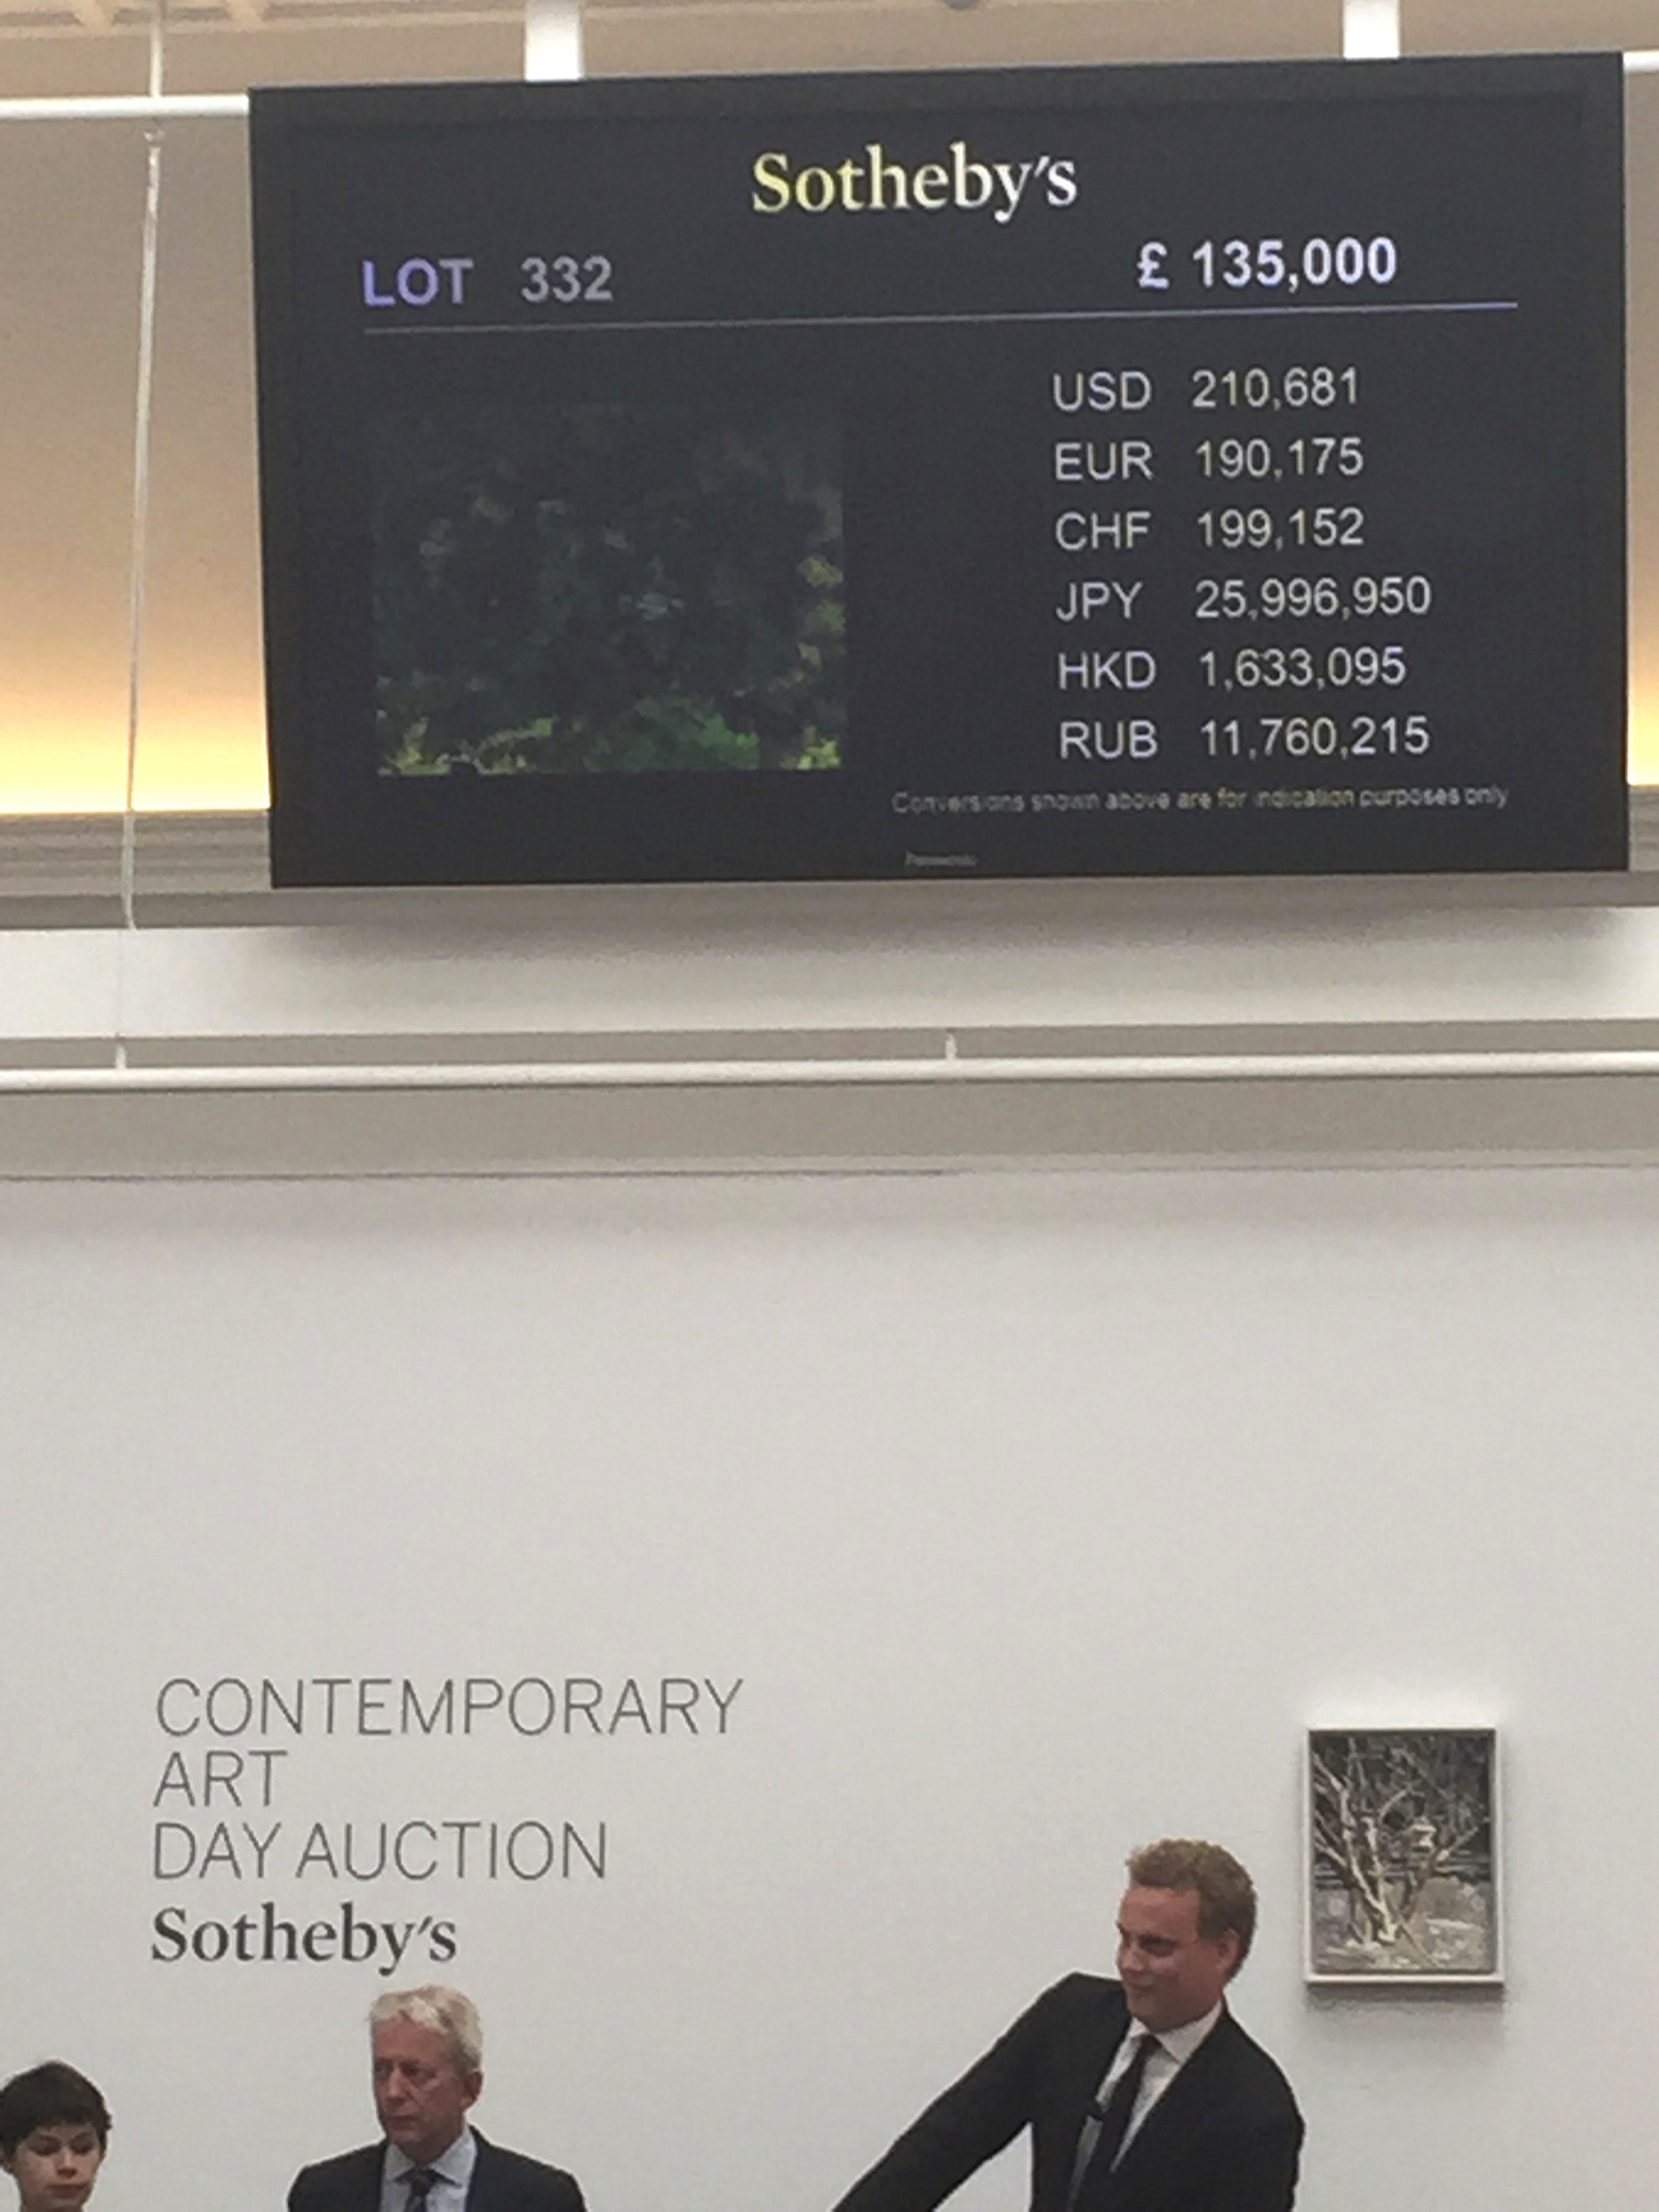 Auctioneer Alex Branczik at Sotheby's London